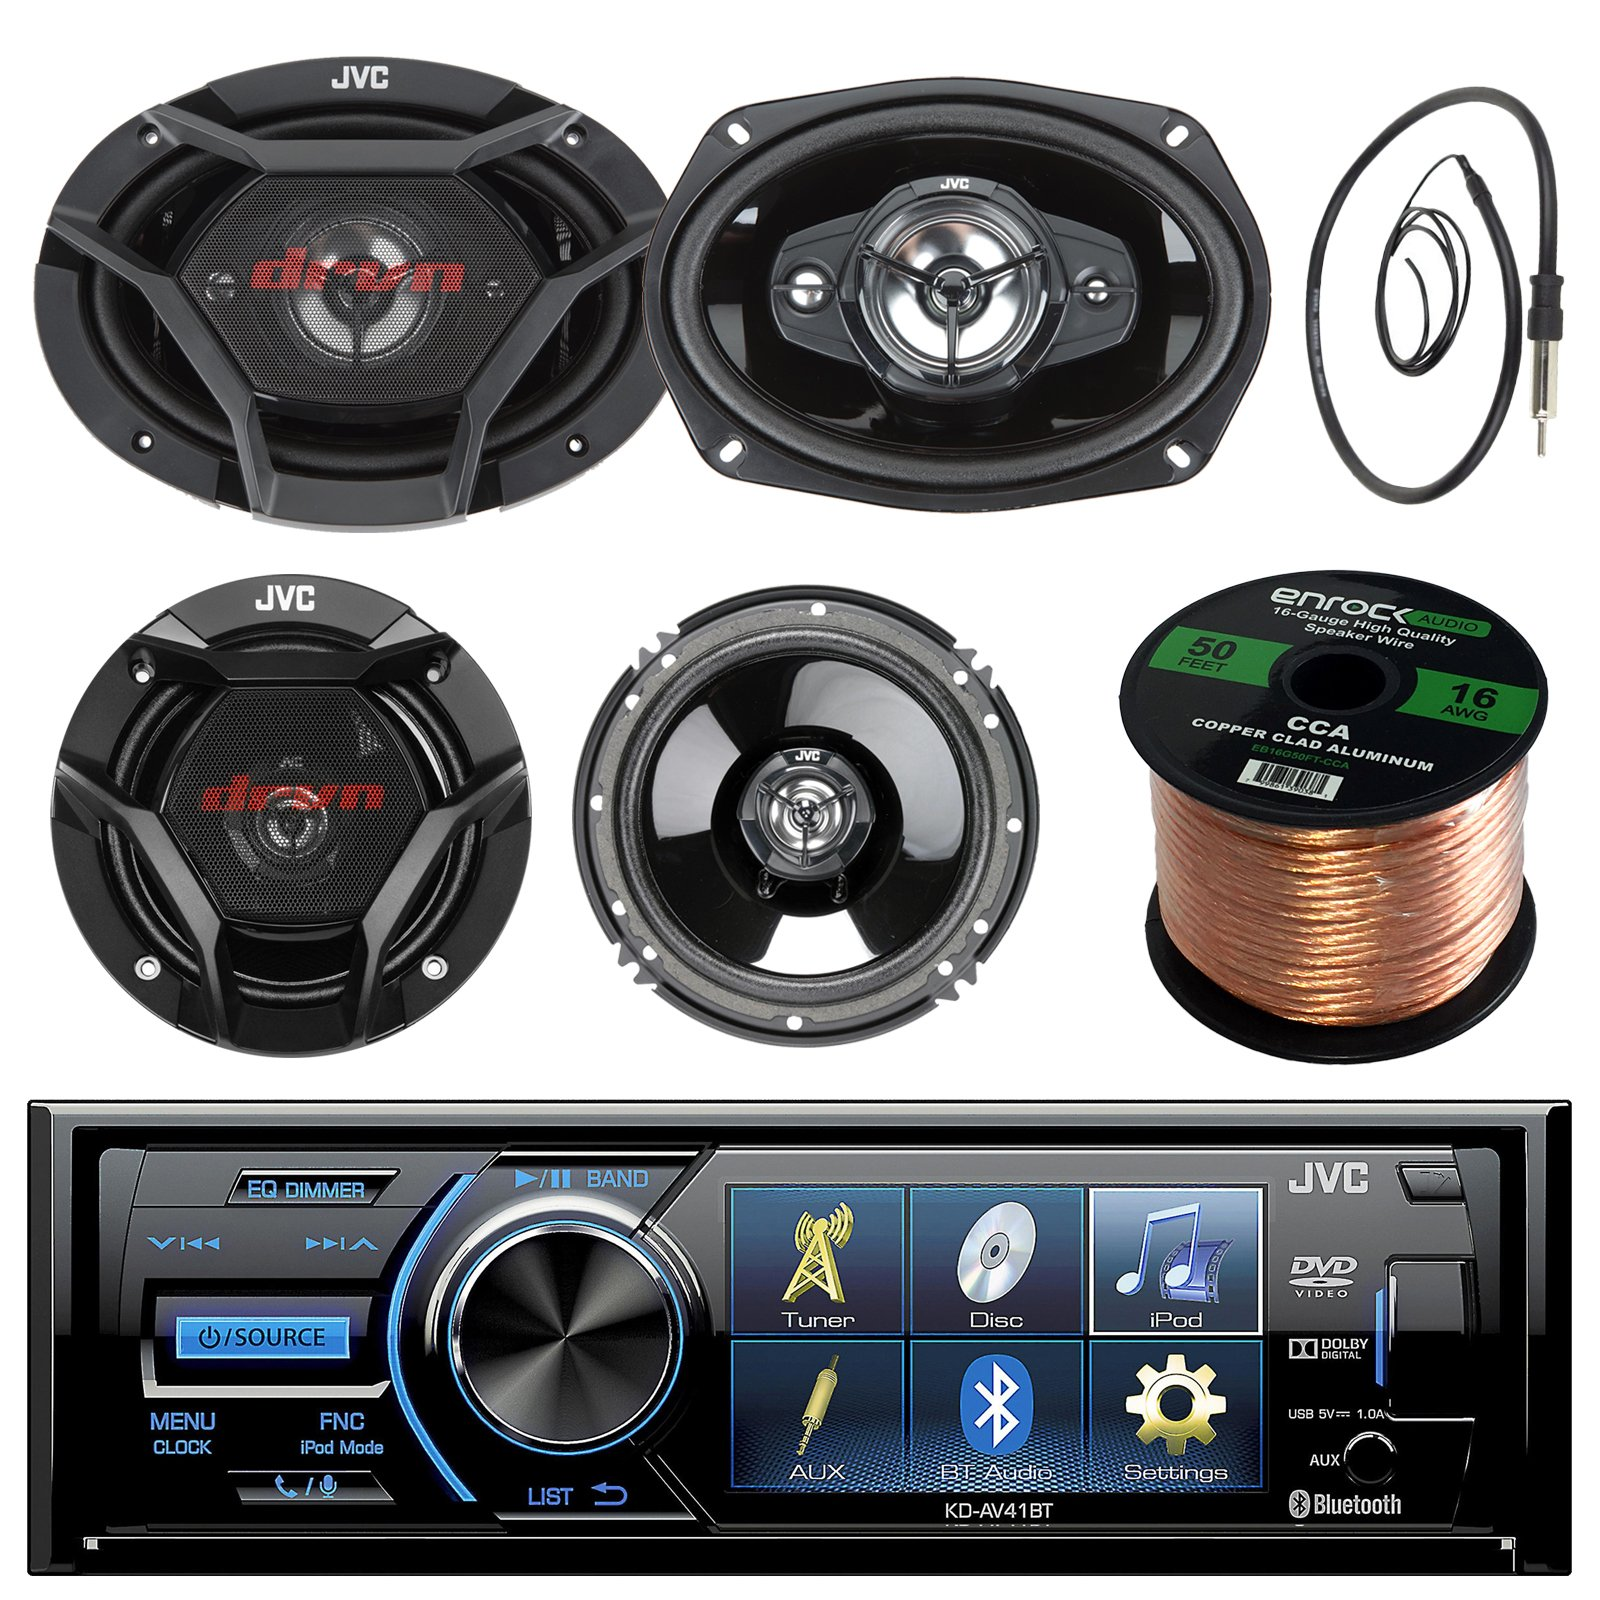 JVC KD-AV41BT 3'' Car DVD Bluetooth Stereo Receiver Bundle Combo With 2x Dual 6.5'' 2-Way And 2x 6x9'' Inch 4-Way Audio Coaxial Upgrade Speakers + Enrock 22'' AM/FM Antenna + 50 Foot 16 Guage Speaker Wire